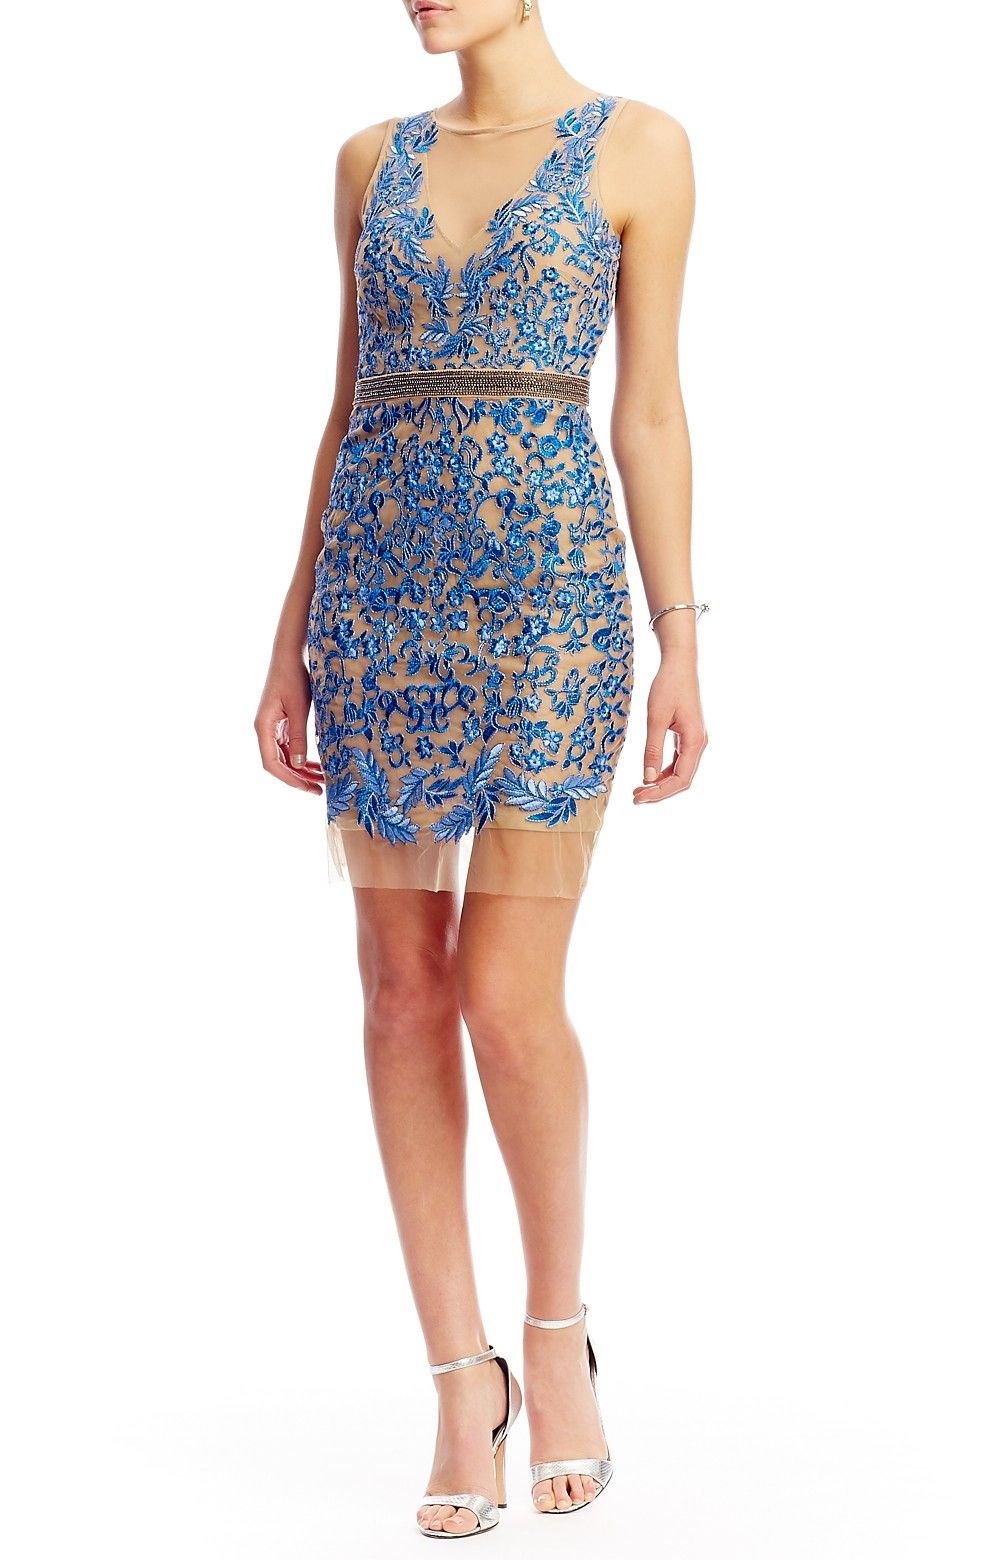 Fl Embroidered Illusion Short Dress New Arrivals Nicole Miller